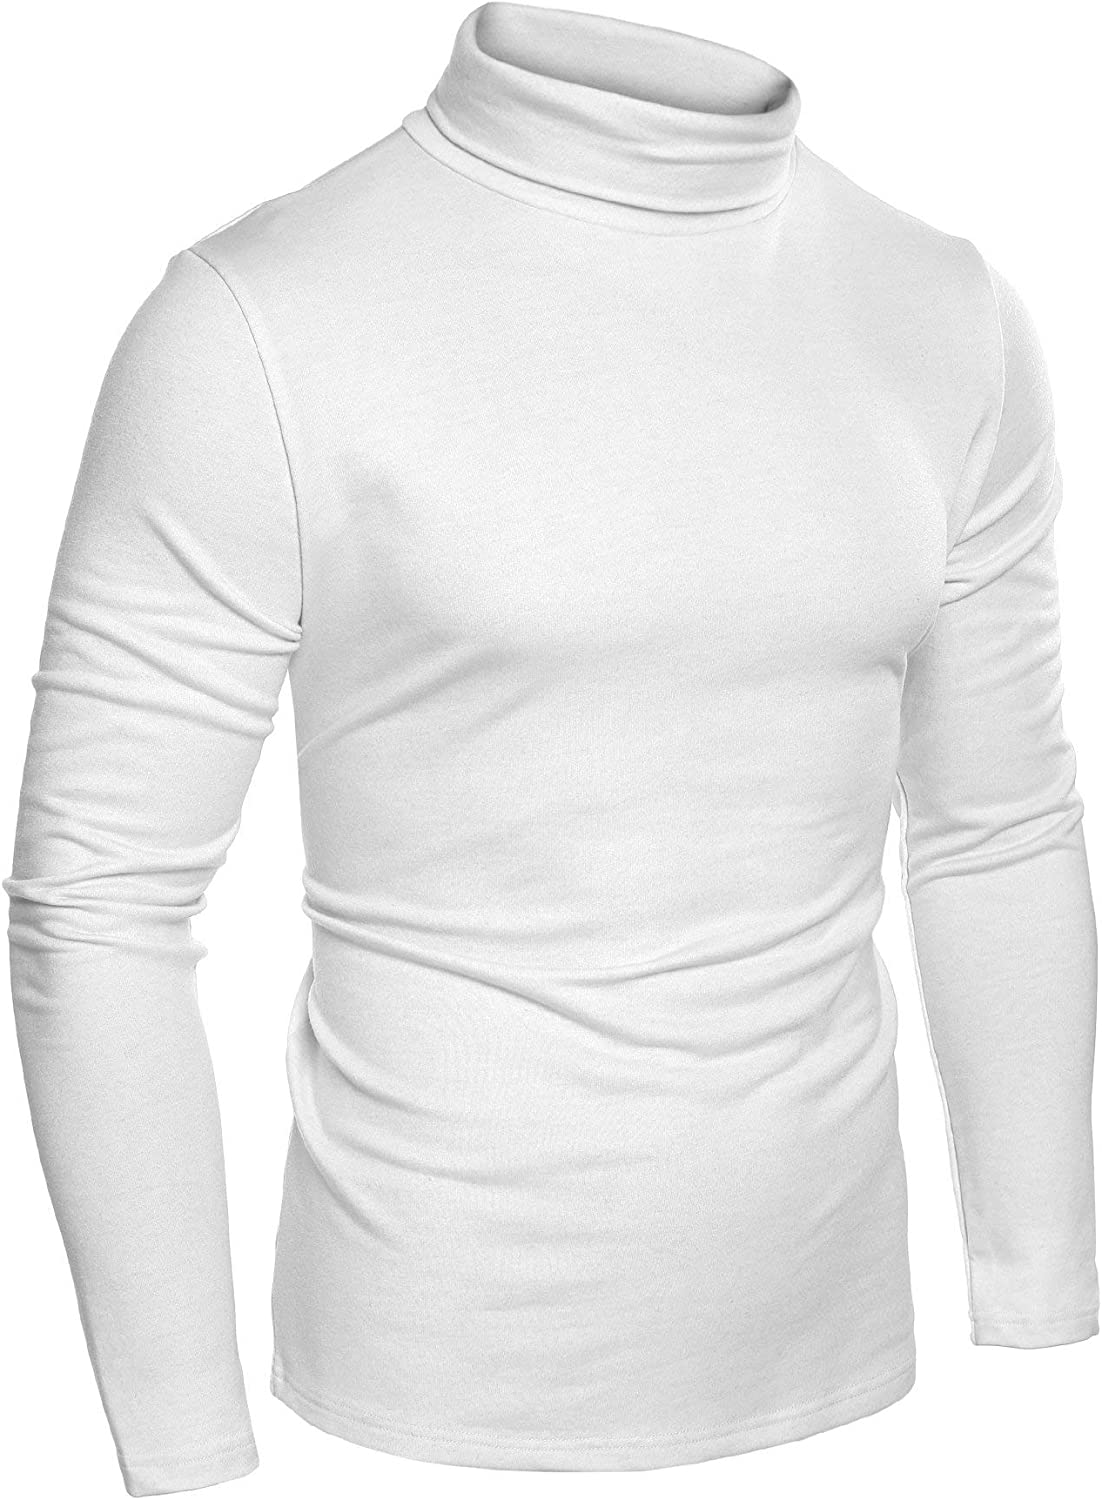 Mengar Mens Casual Basic Thermal Turtleneck T Shirts Roll Neck Pullover Sweaters